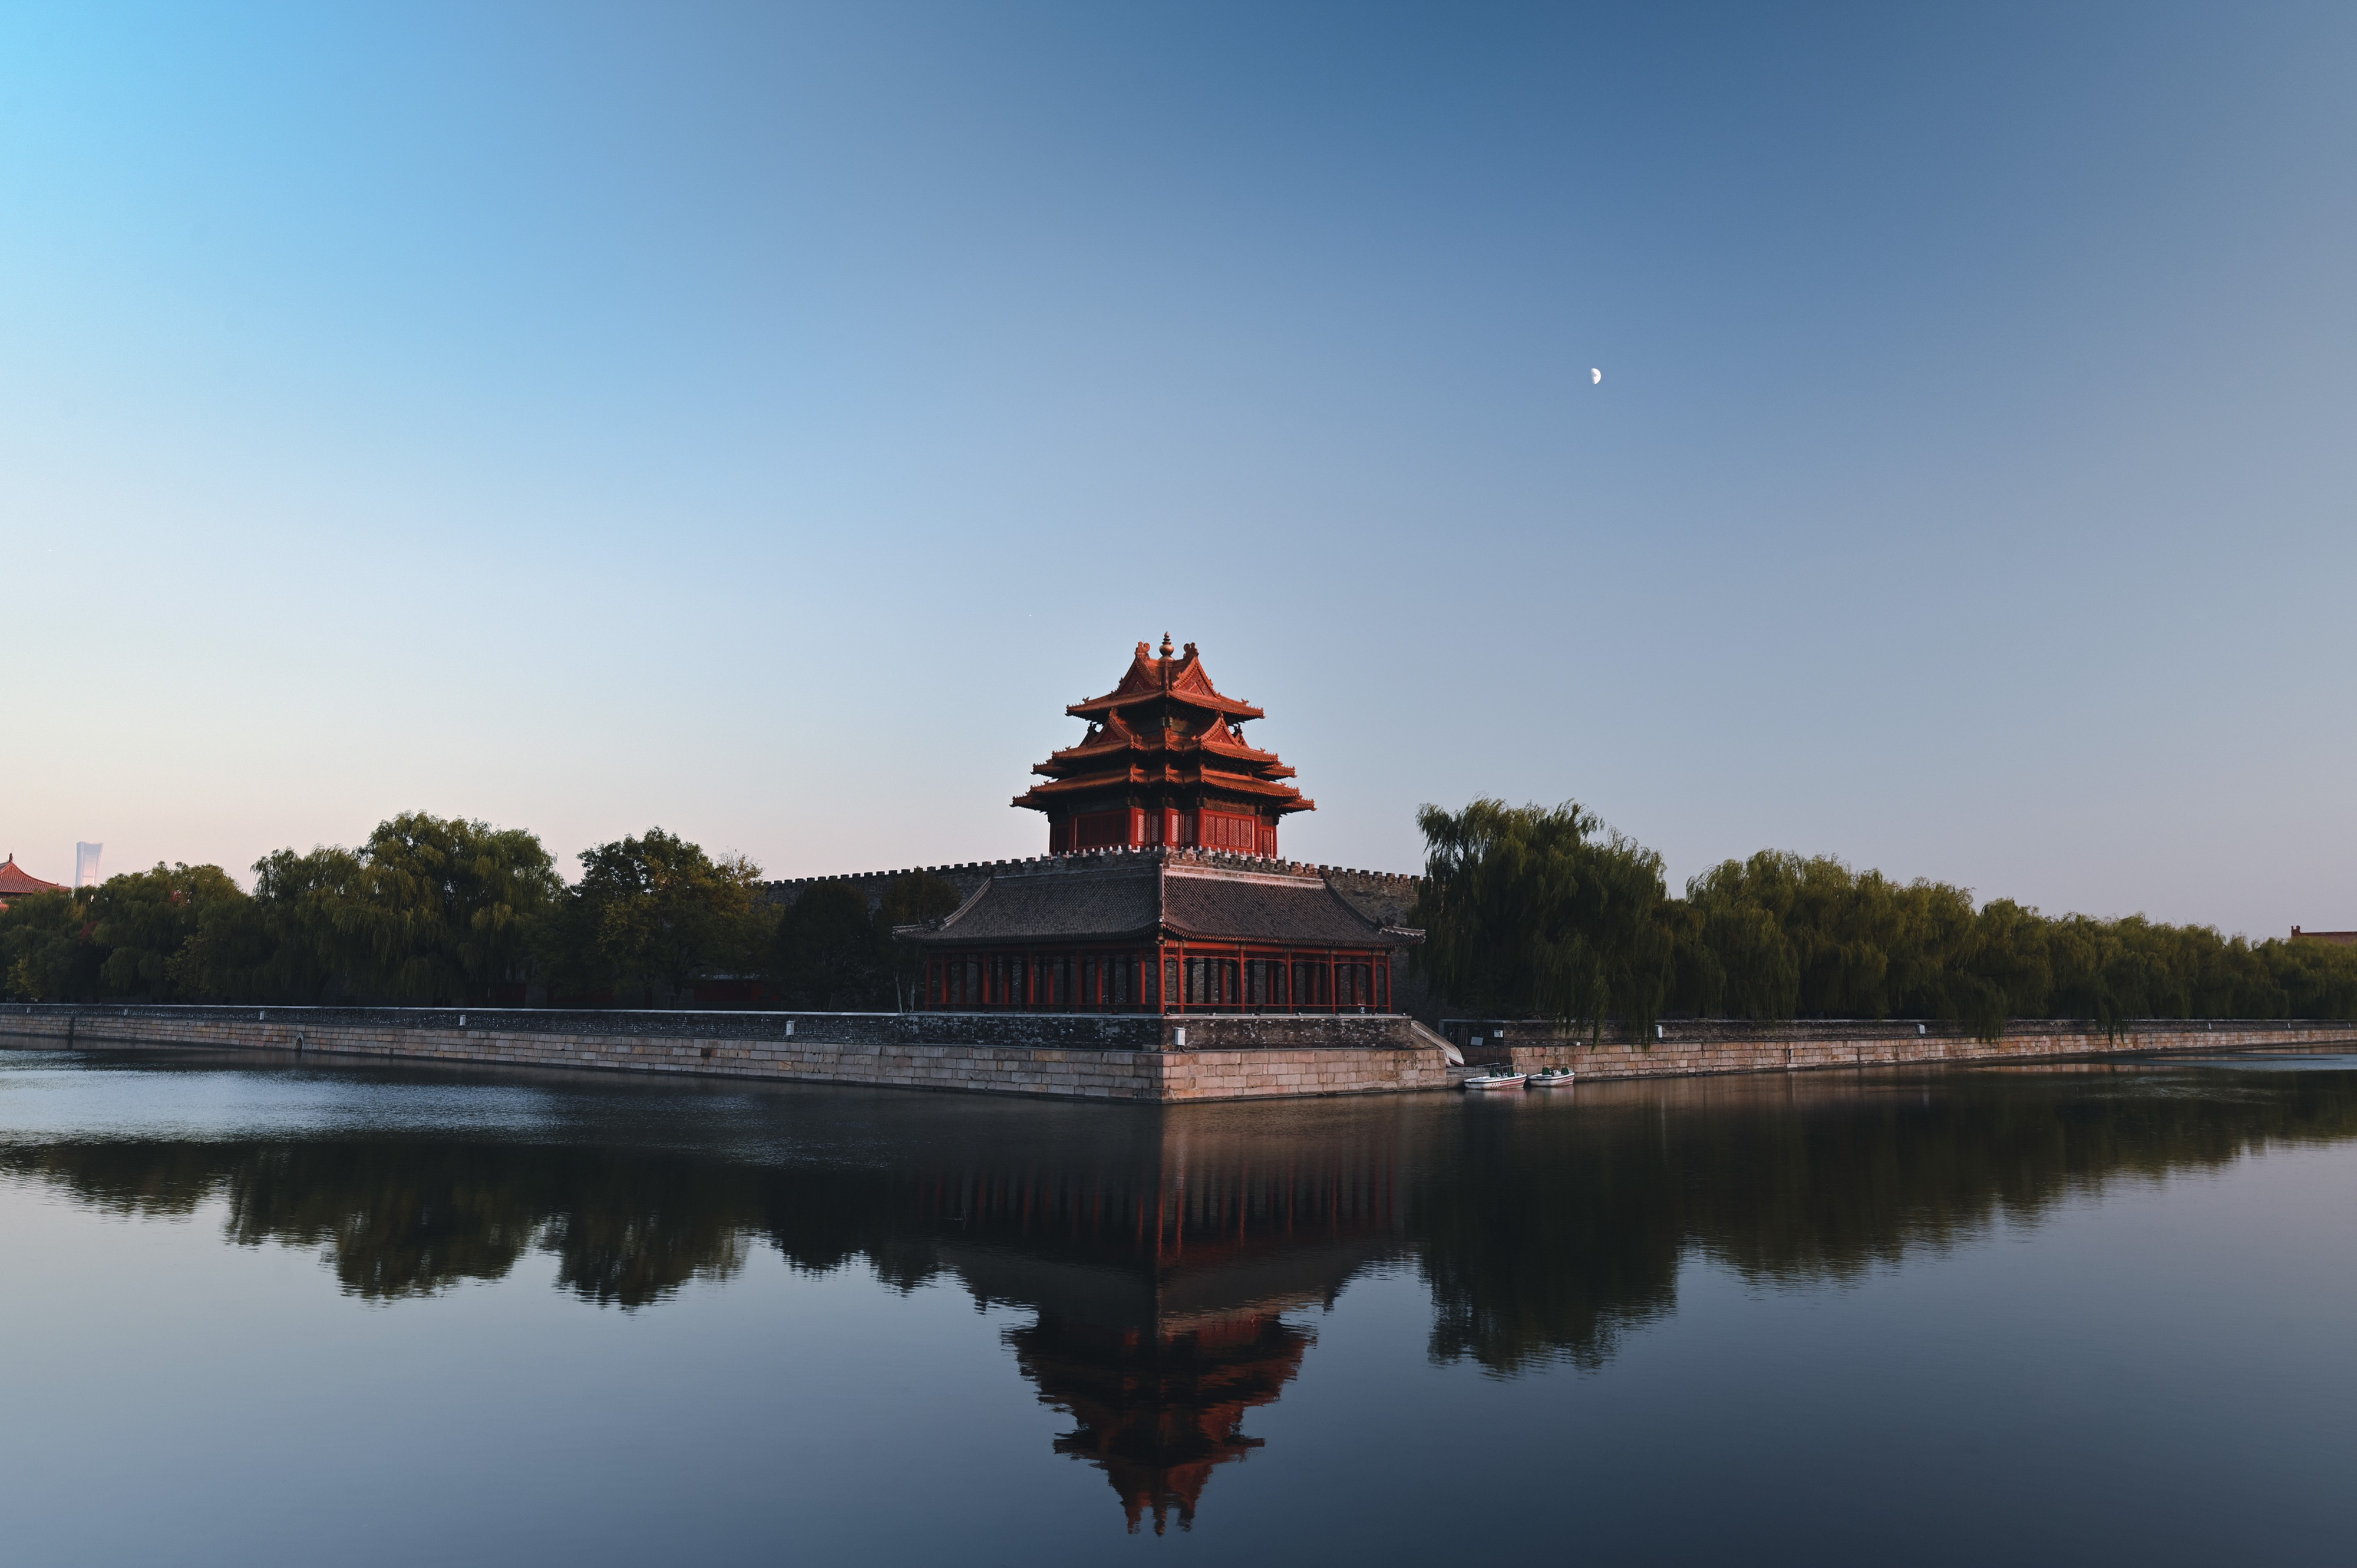 Forbidden City Tower in Beijing, China in the evening.